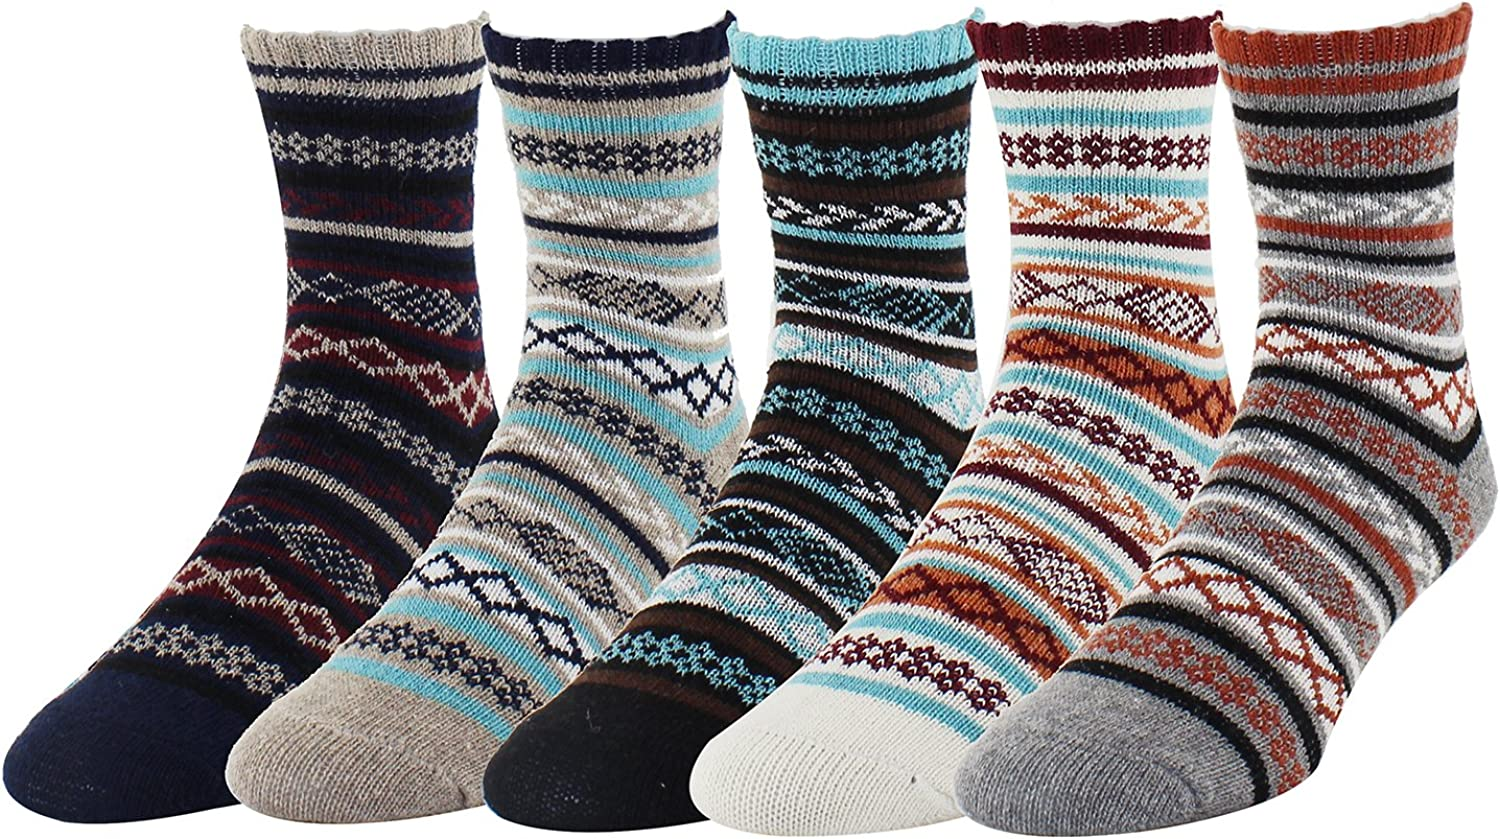 Zmart 5 Pack Men's Business Striped Knit Wool Cozy Socks Cool Colorful Design Gift